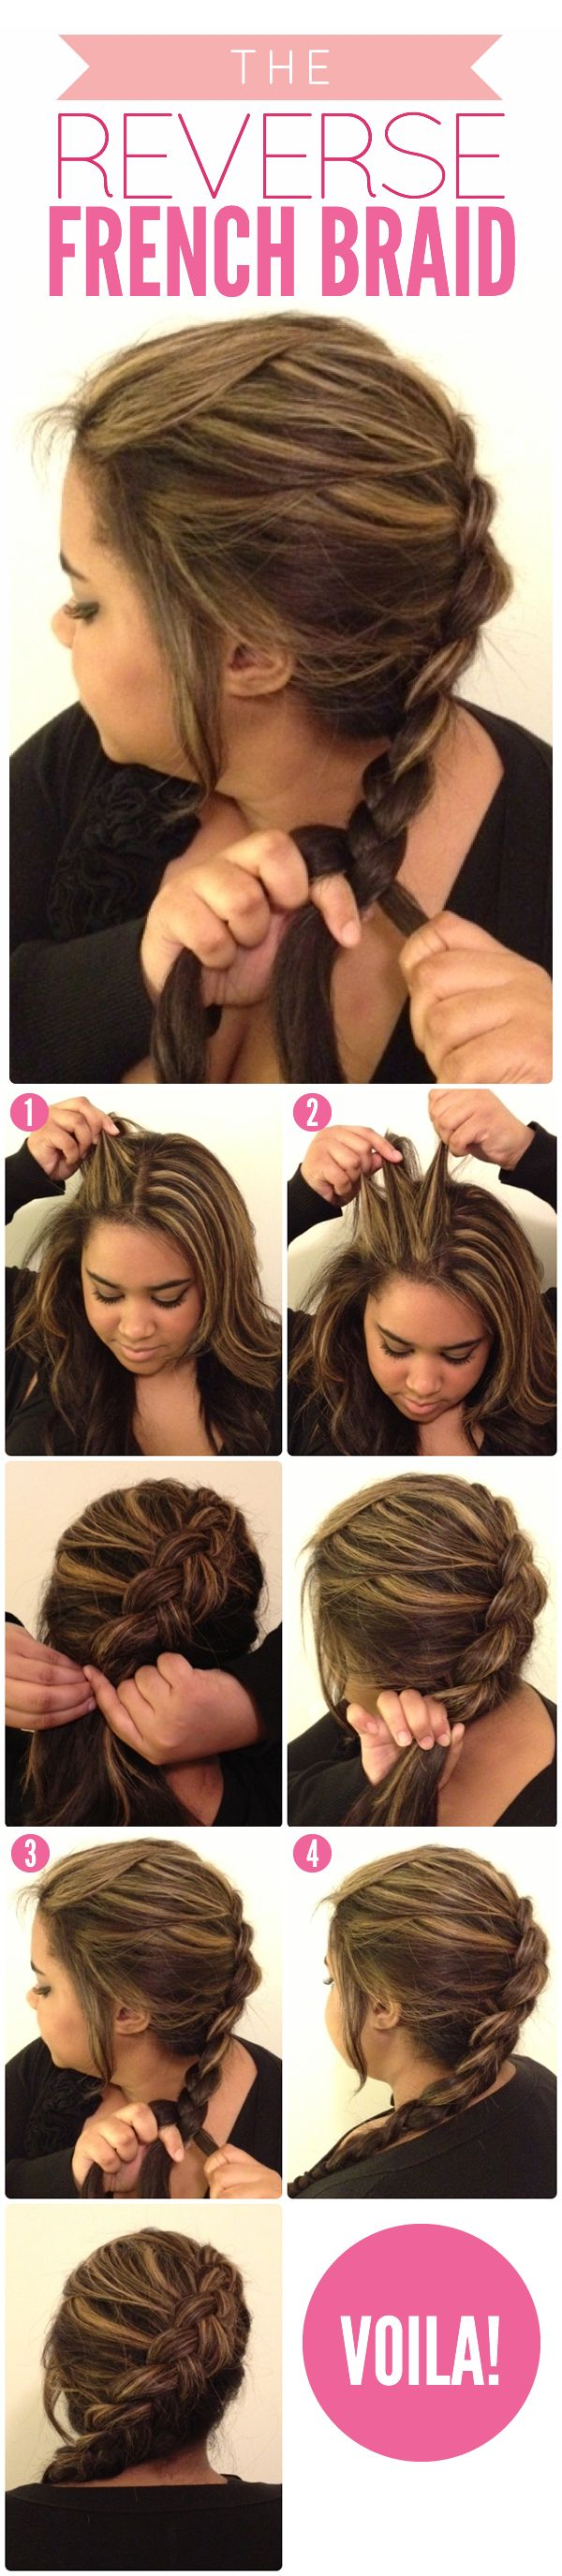 1000 Images About Coiffure On Pinterest Her Hair Coiffures And